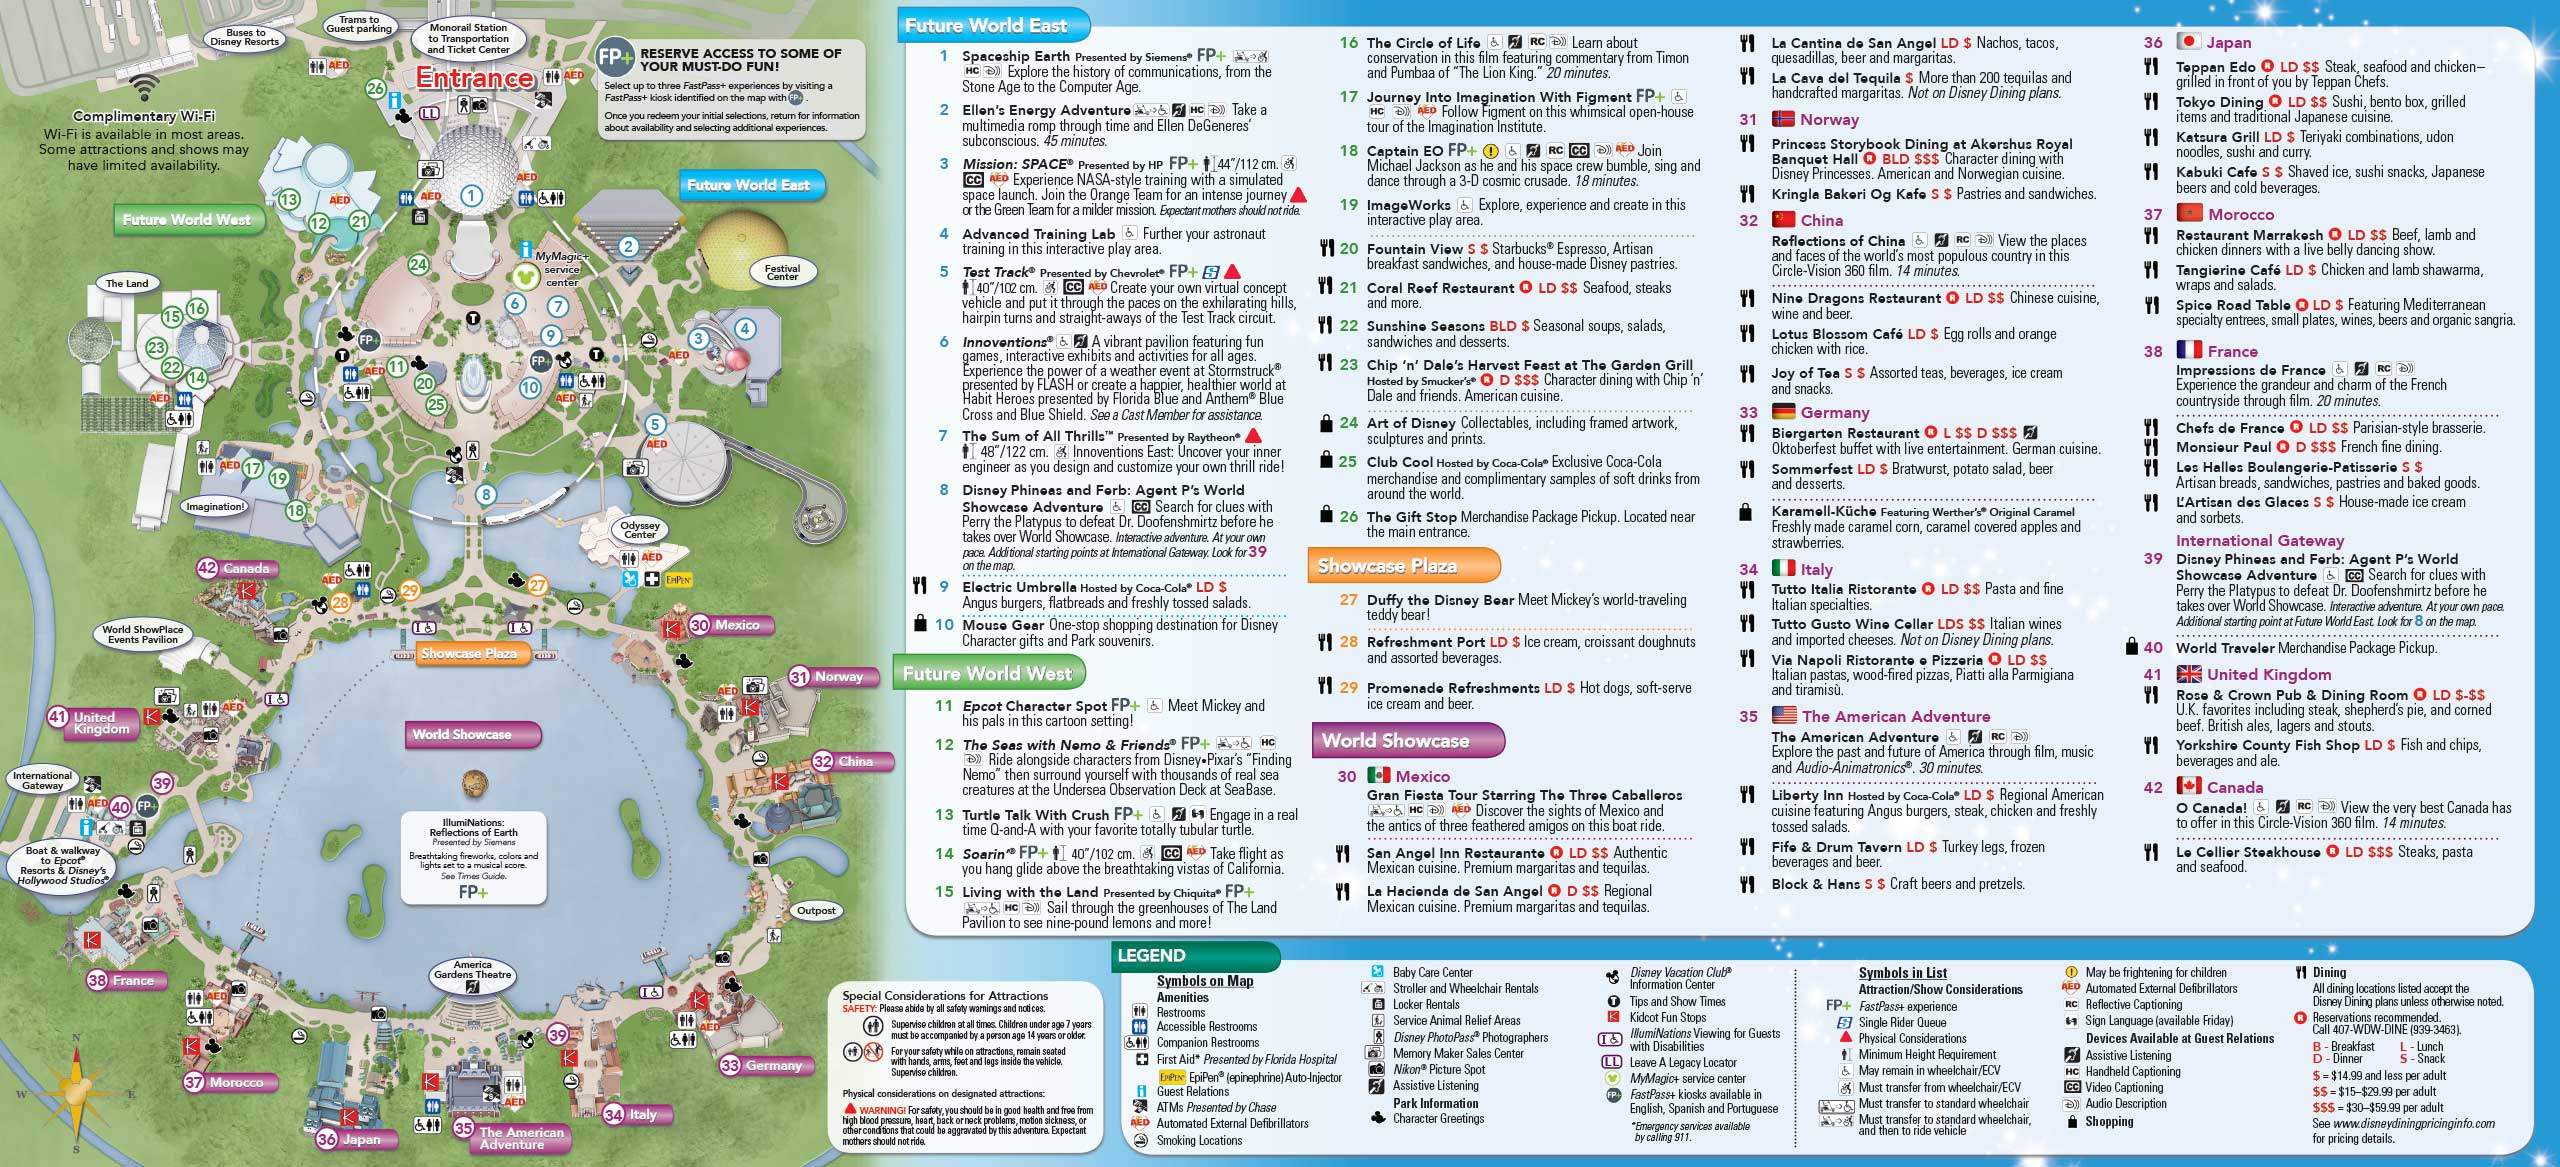 May 2015 Walt Disney World Resort Park Maps - Photo 6 of 14